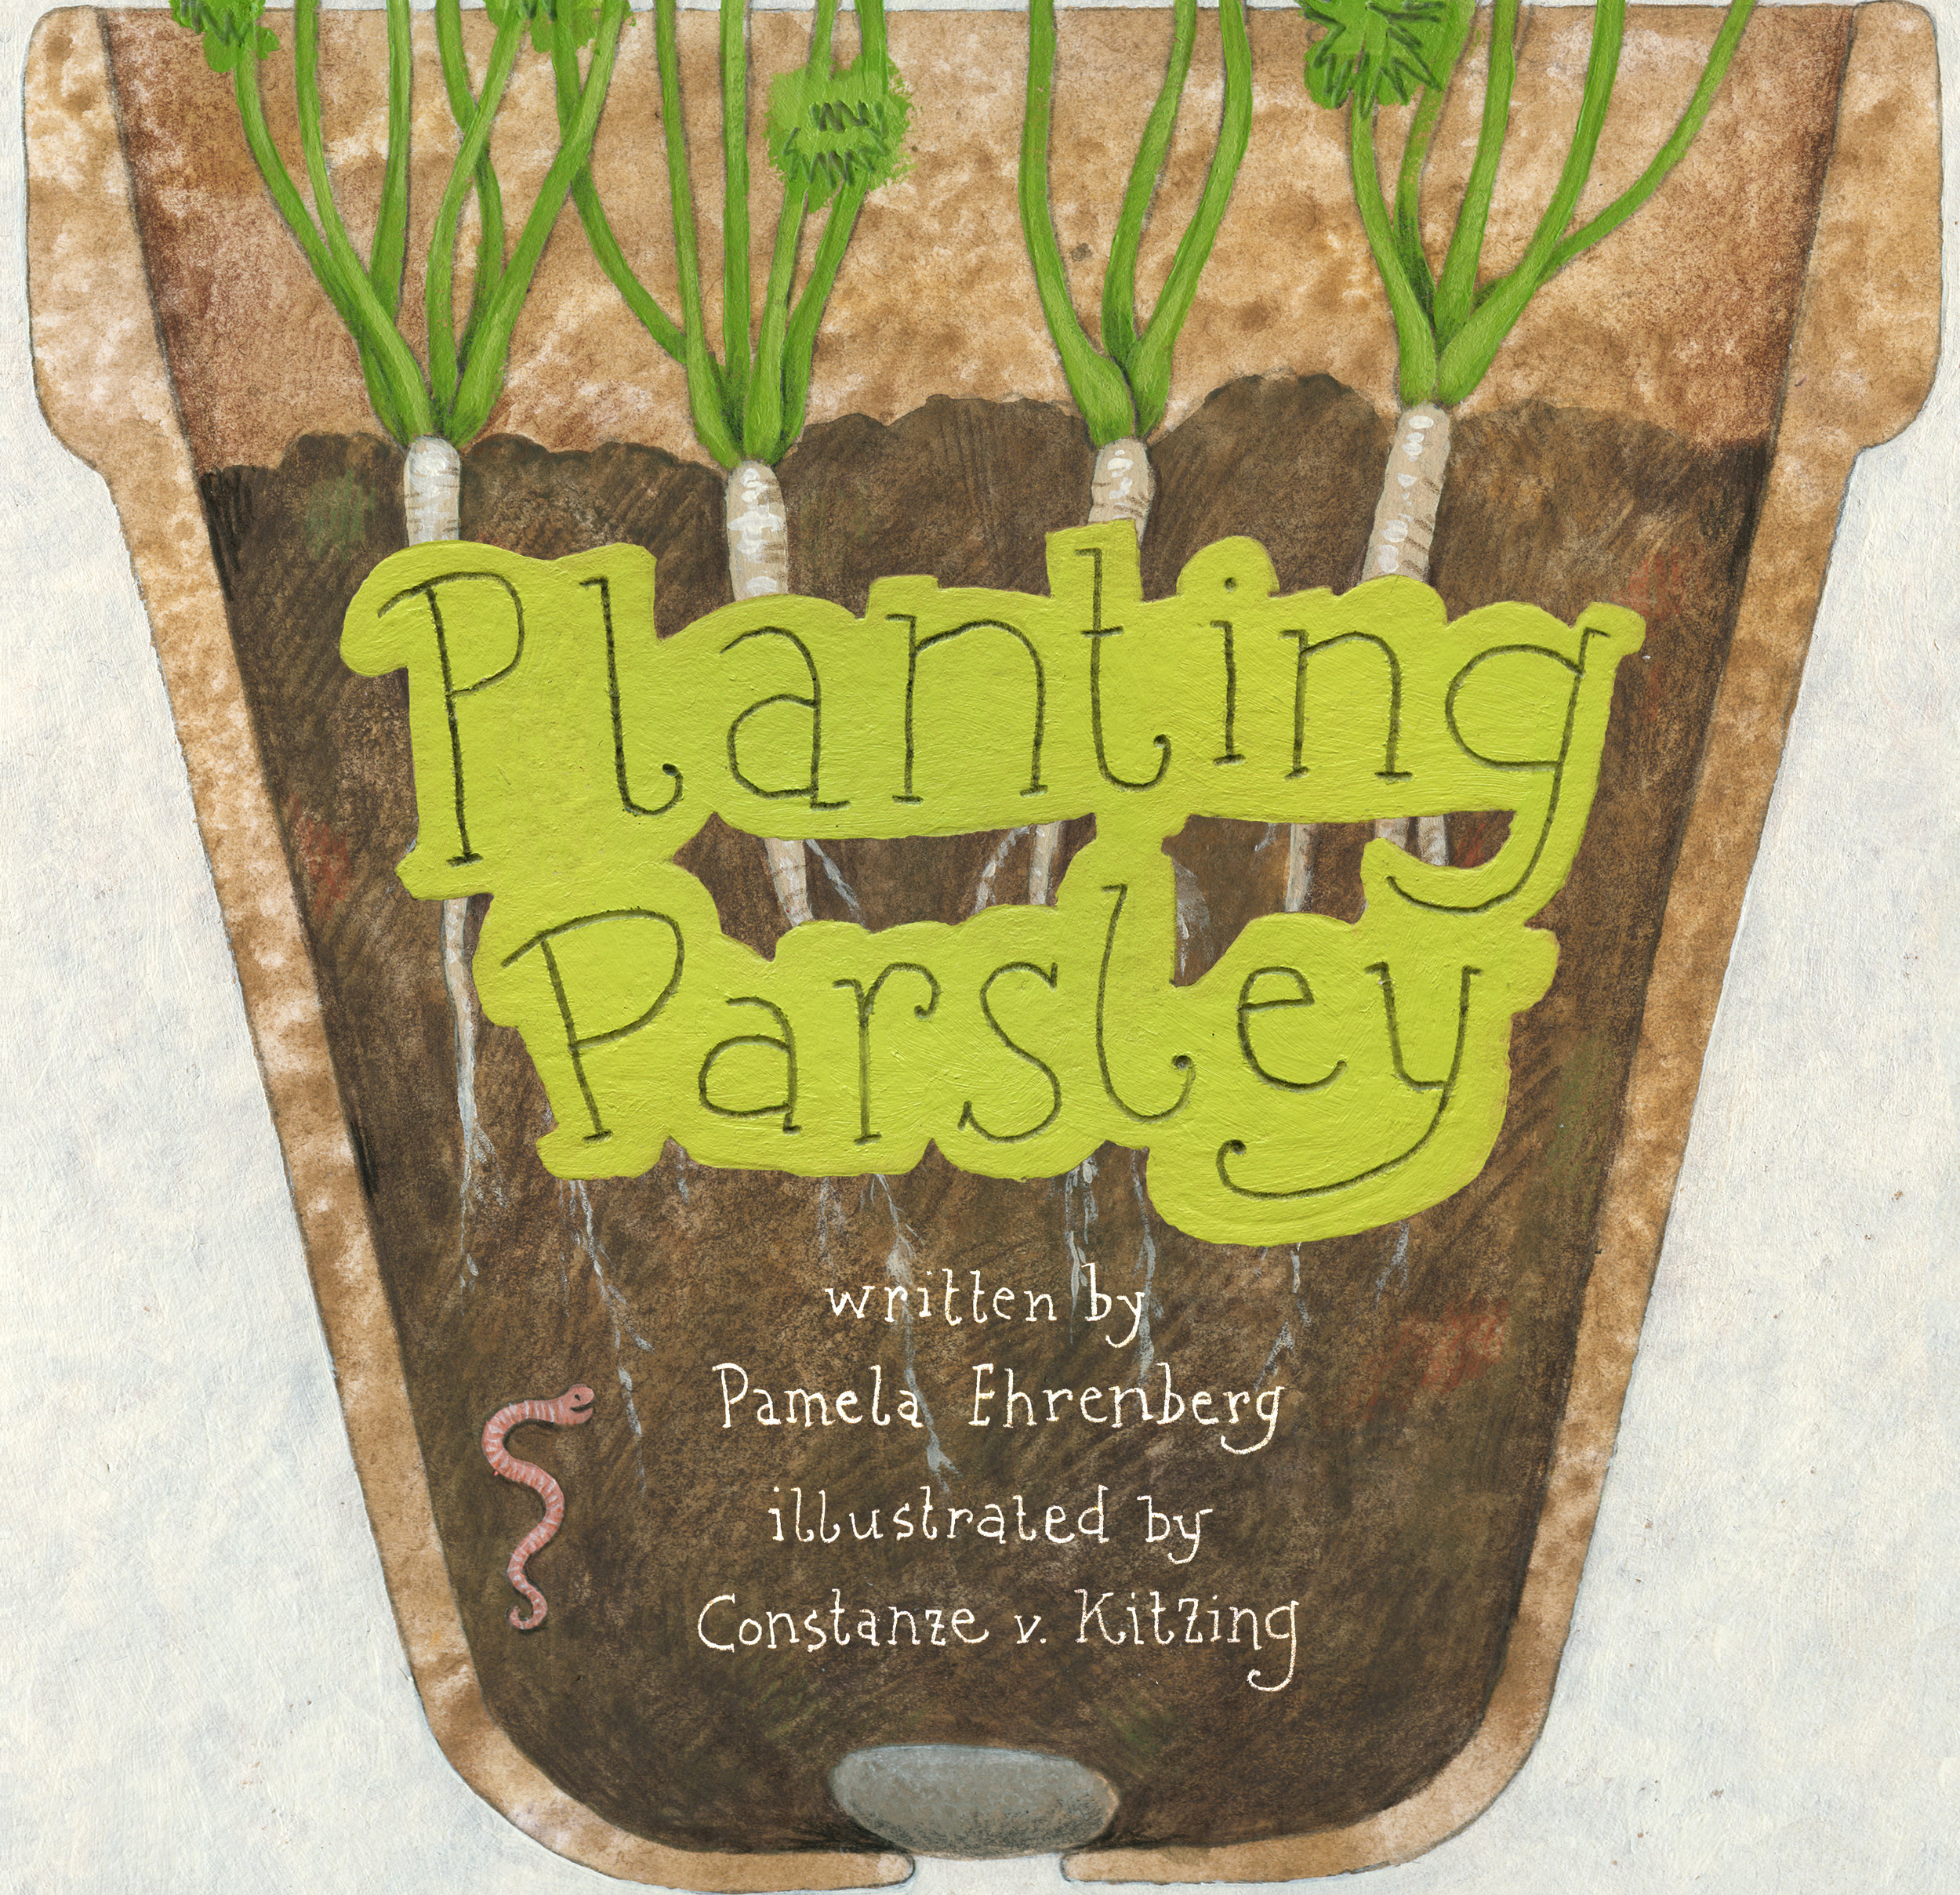 Planting Parsley Harold Grispoon Foundation 2015, USA